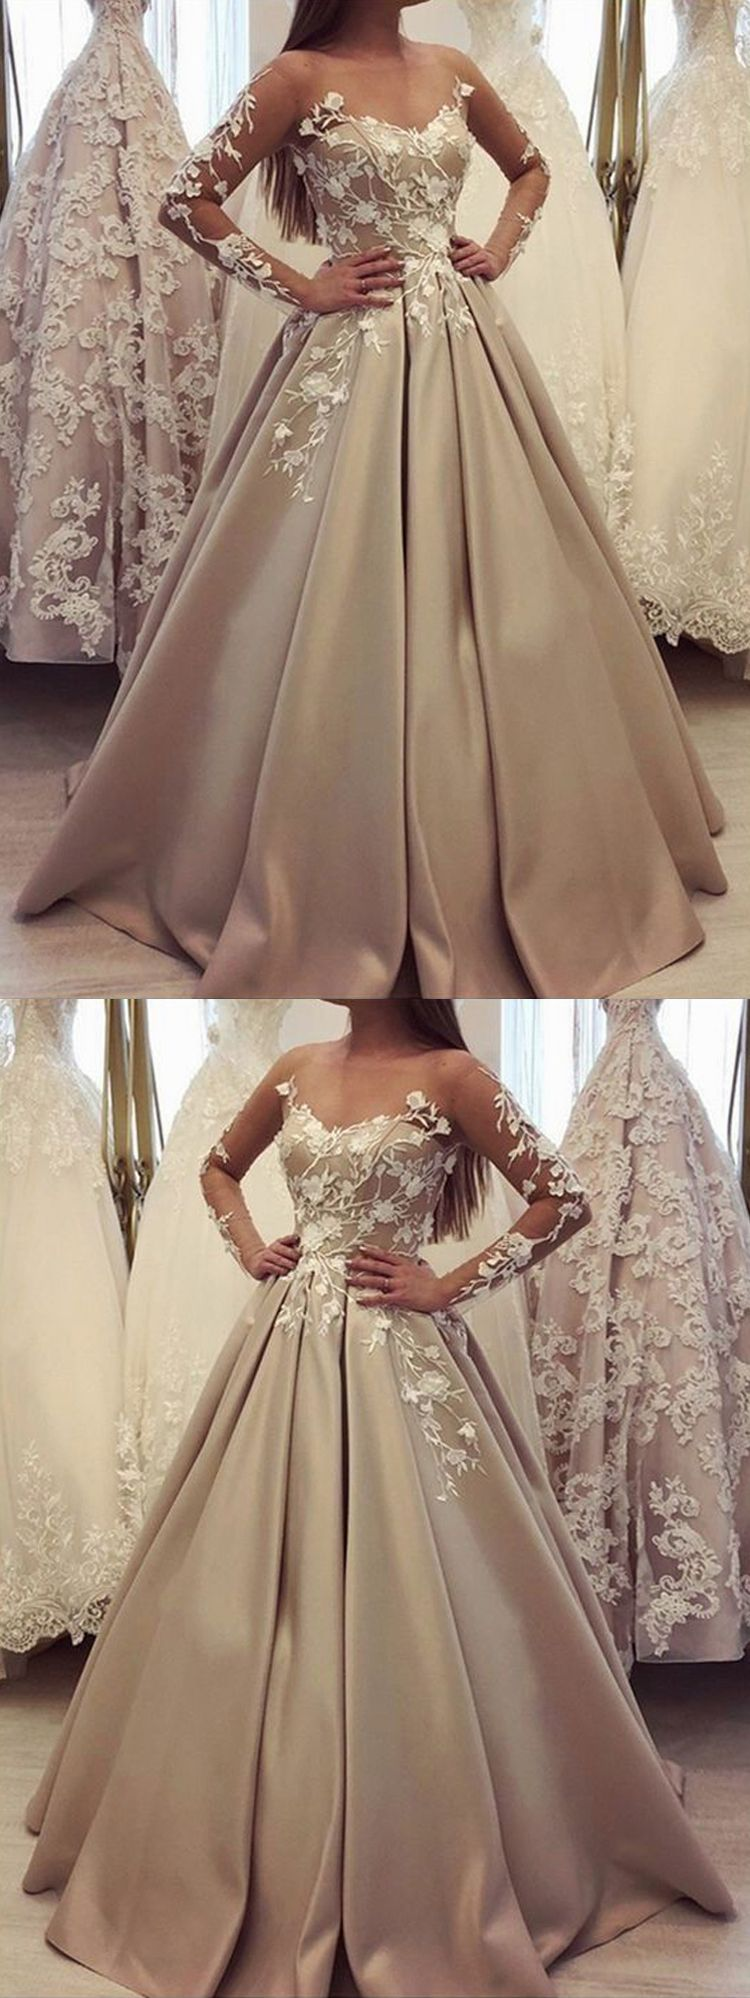 Gorgeous Ball Gown Scoop Long Sleeves Lace Champagne Long Prom Dresses Quinceanera Dresses Pd0927007 Prom Dresses Long With Sleeves Champagne Prom Dress Prom Dresses With Sleeves [ 1998 x 750 Pixel ]